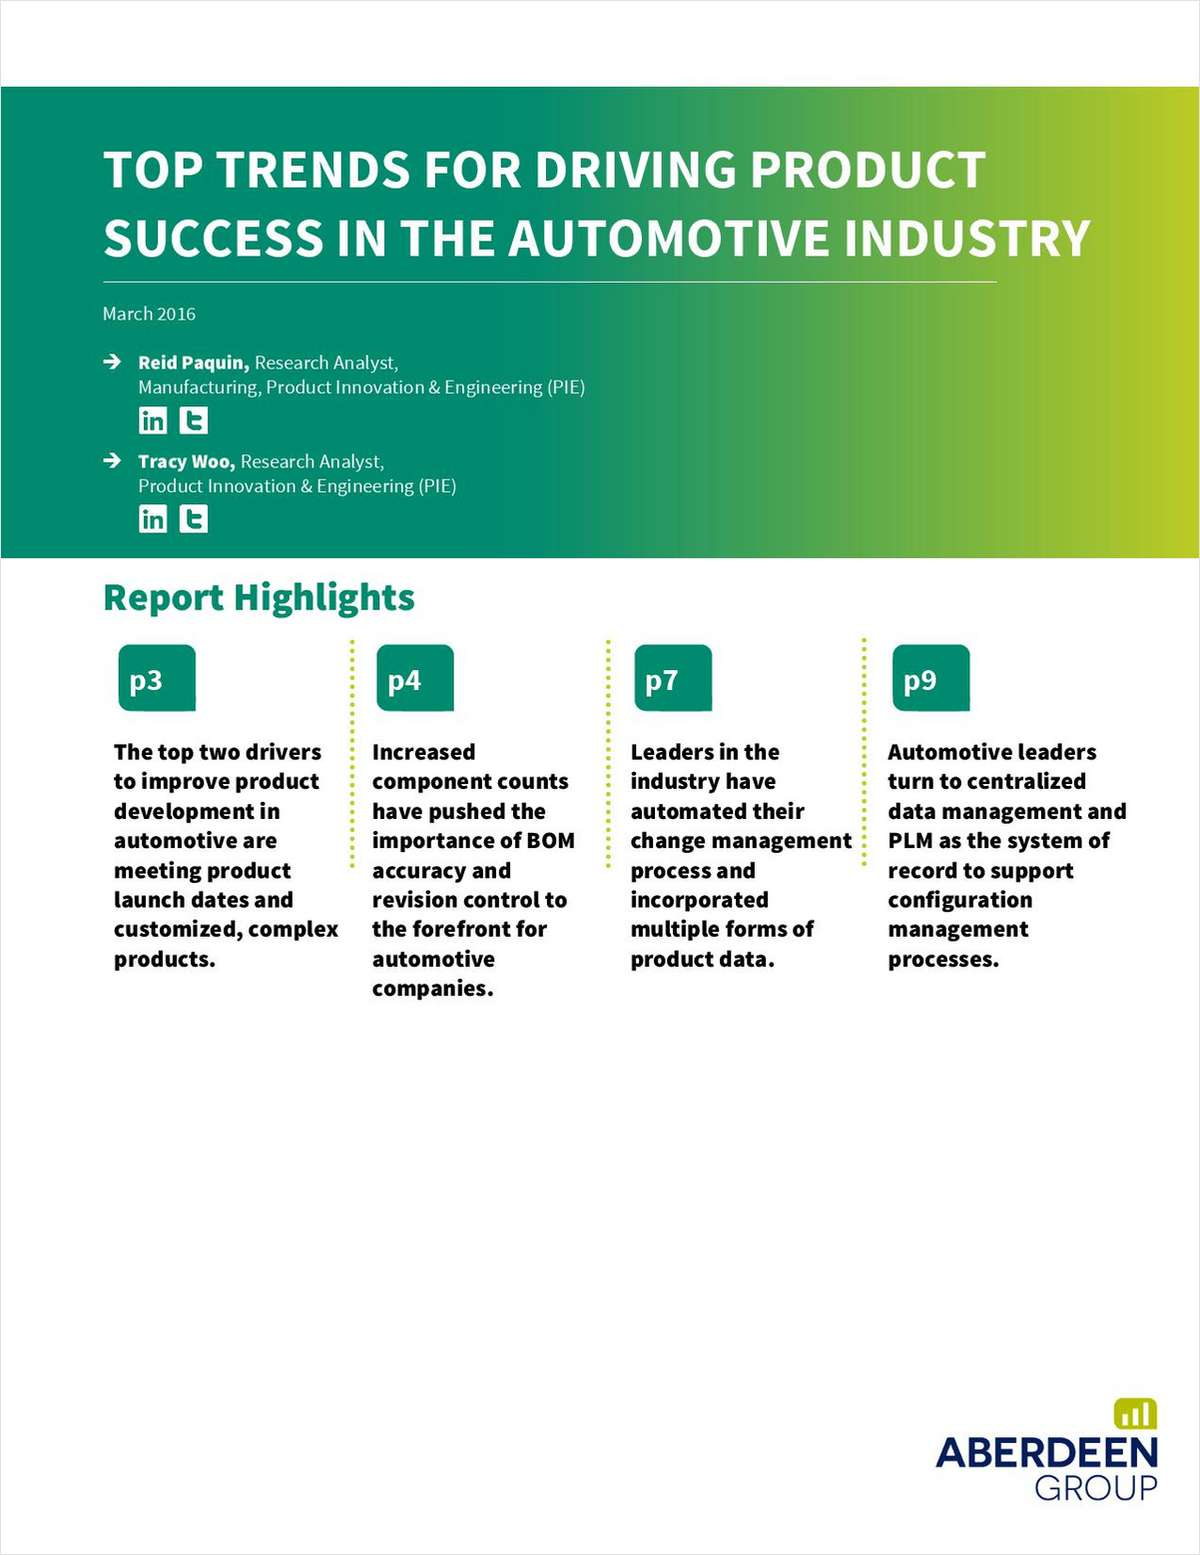 Top Trends for Driving Vehicle Success in the Automotive Industry